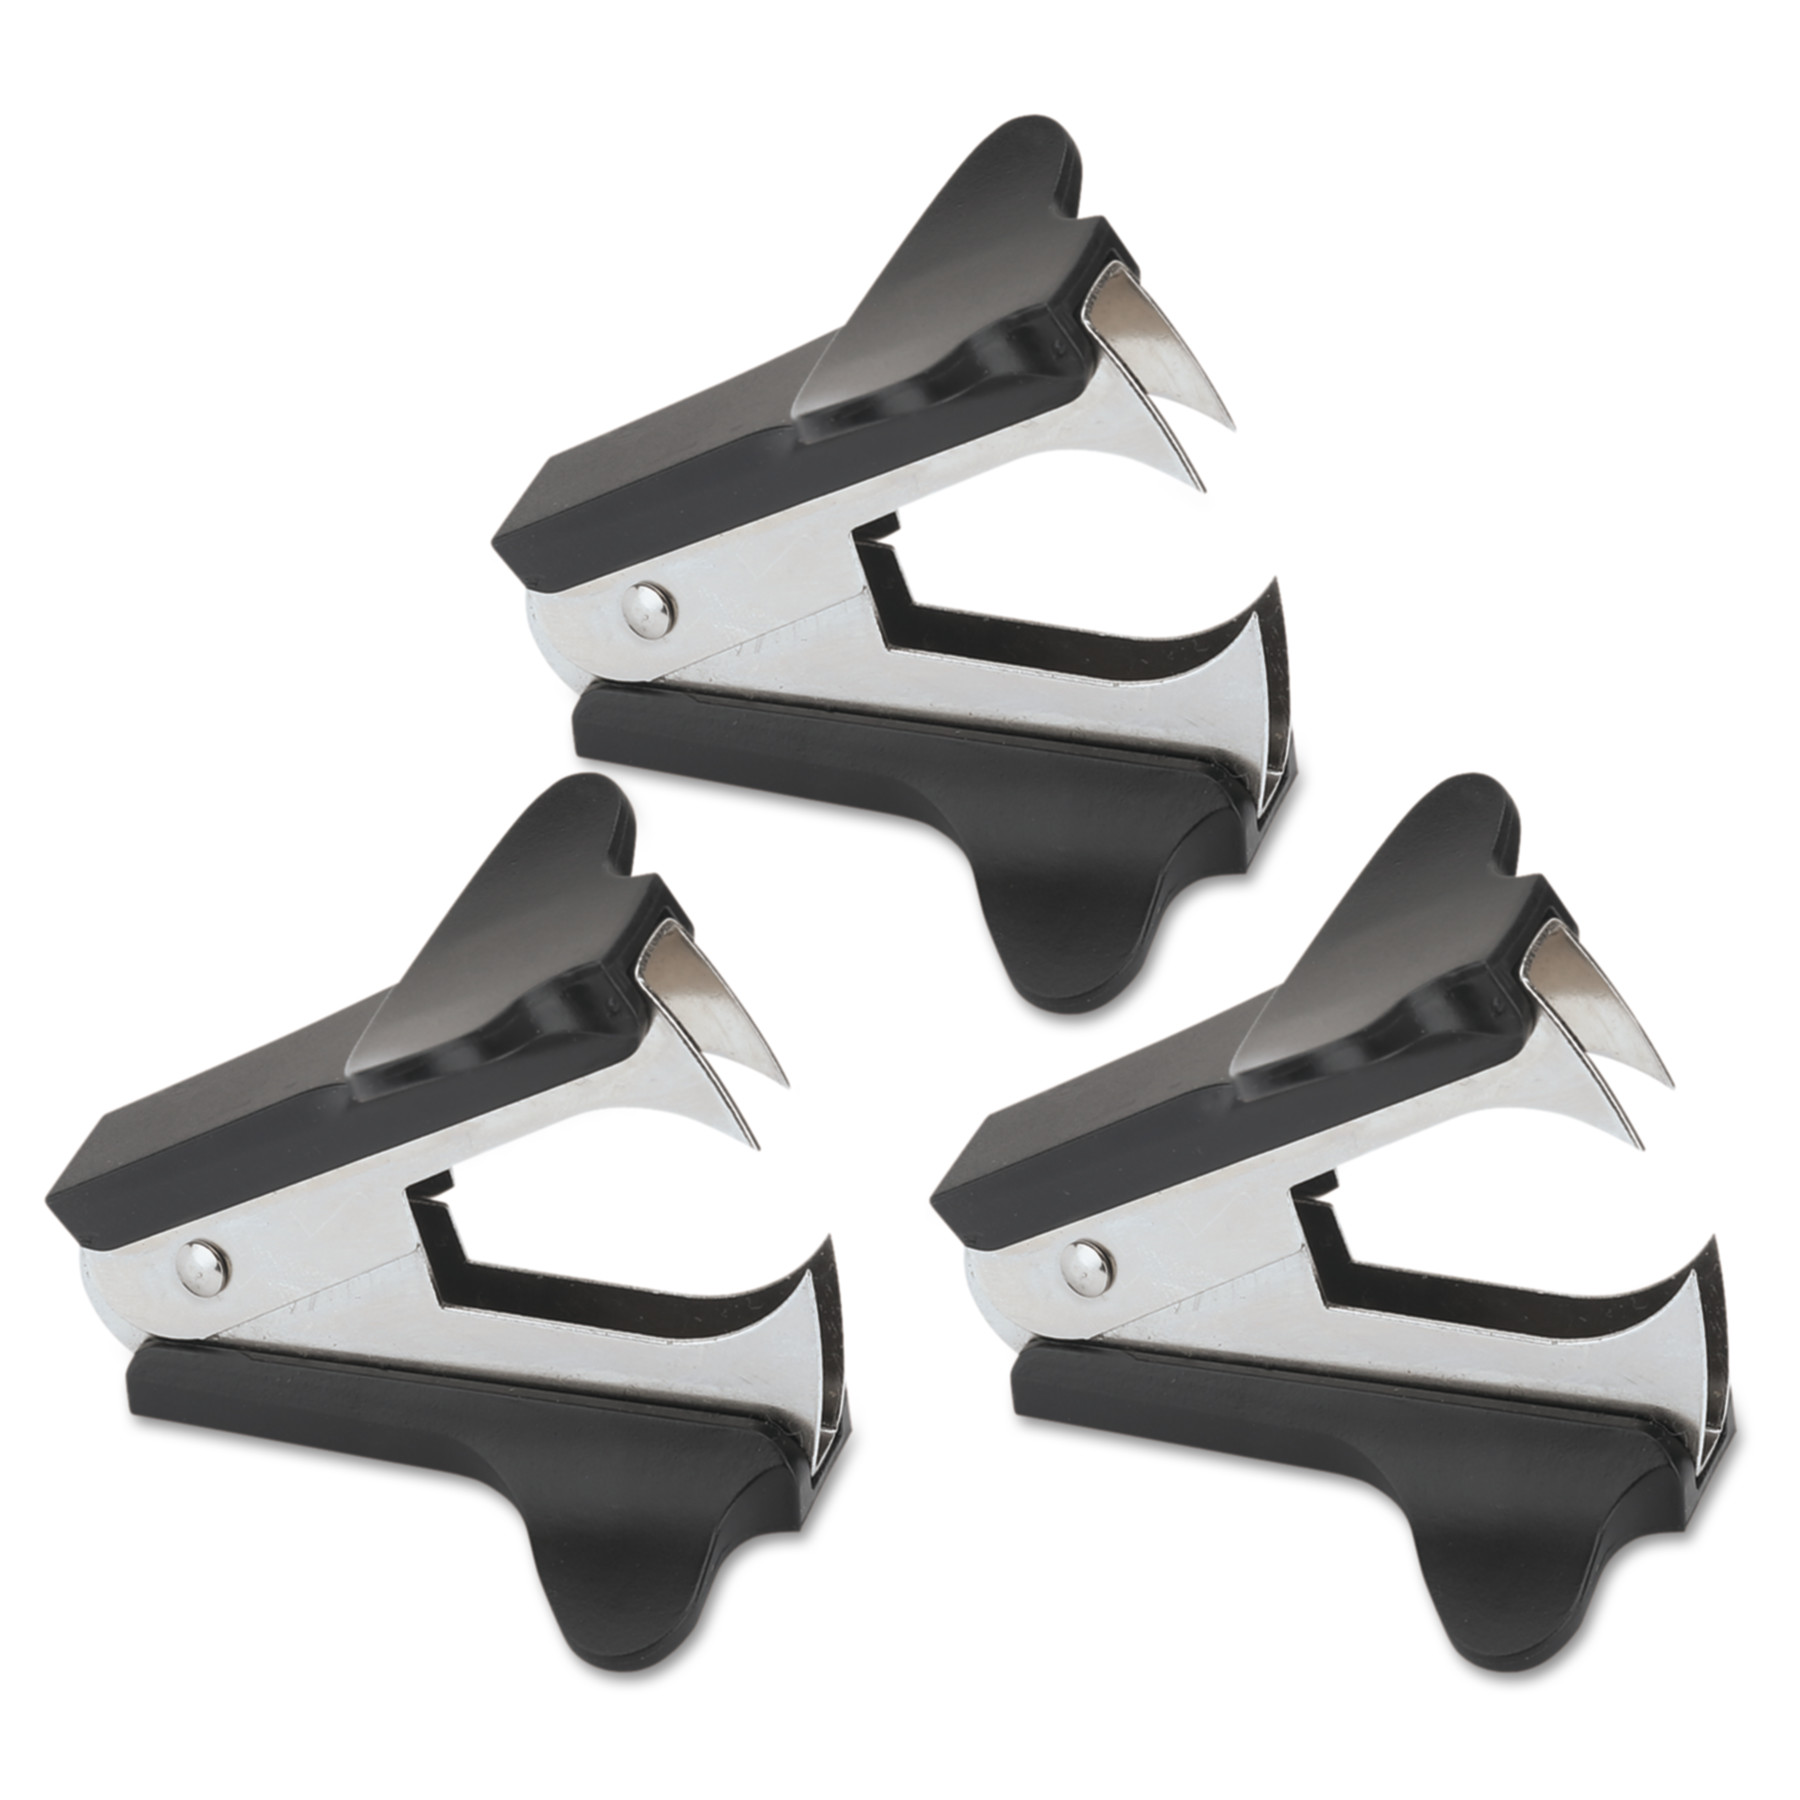 Office Impressions Jaw Style Staple Remover, Brown, 3/PK